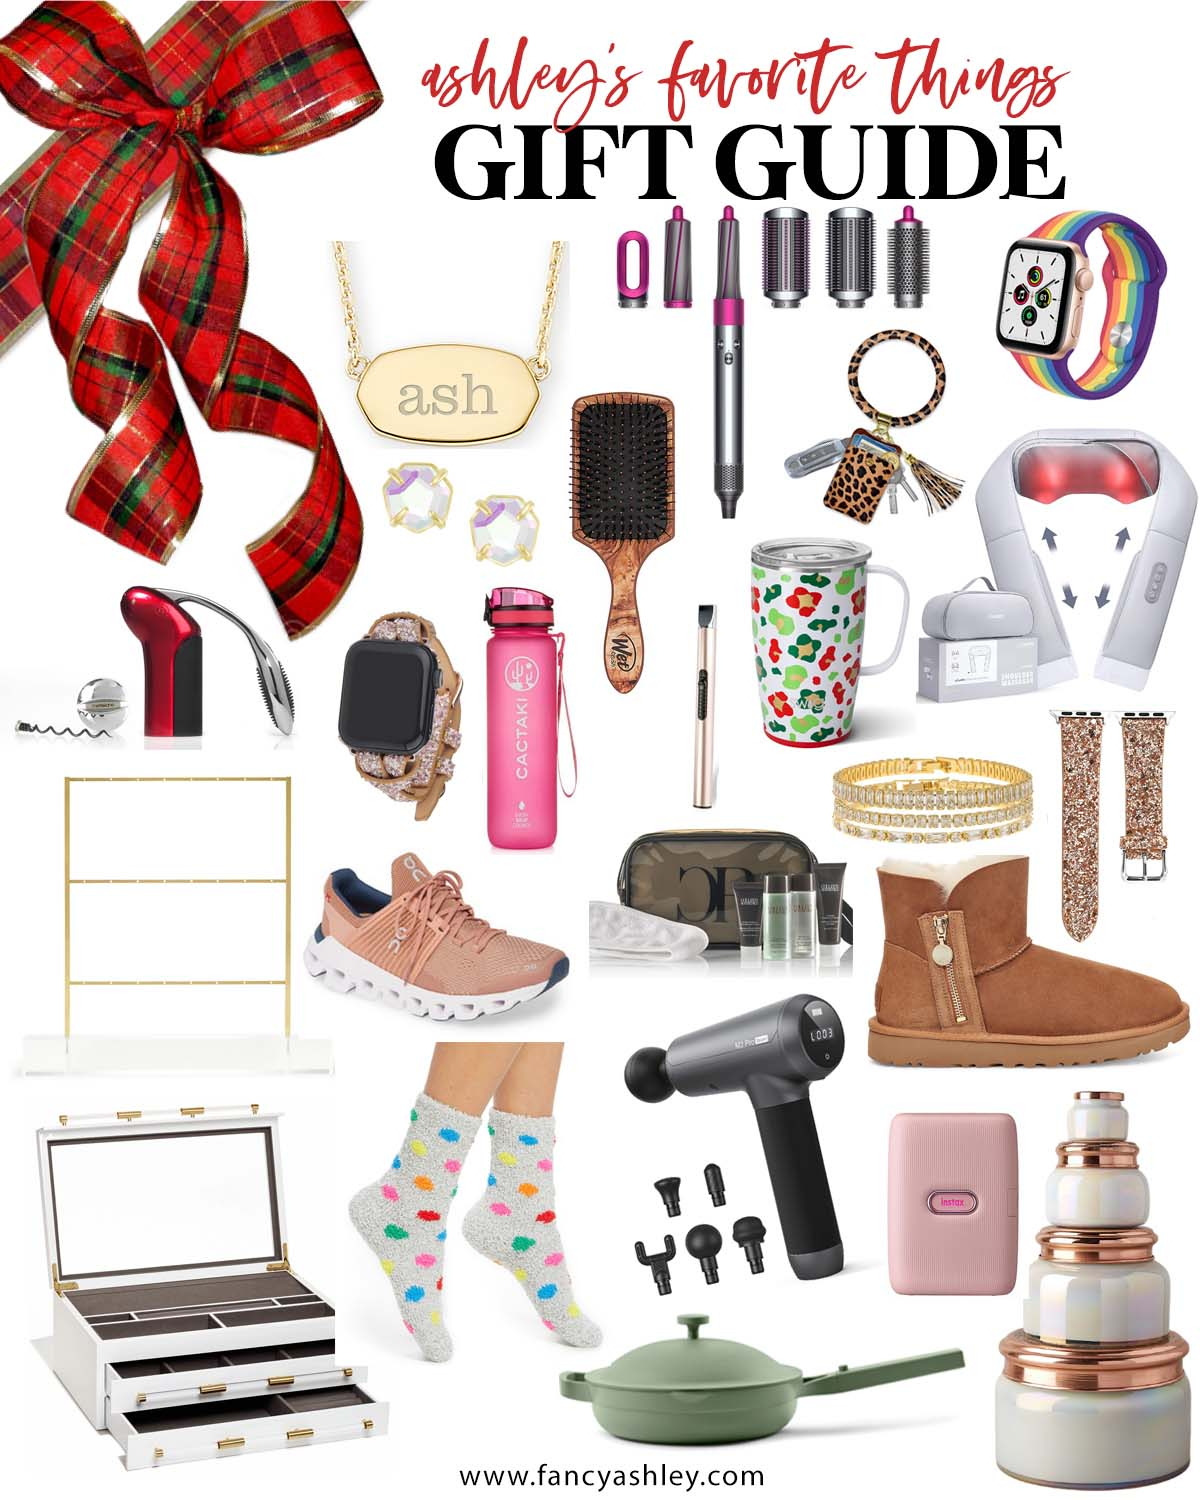 Favorite Things Gift Ideas by popular Houston life and style blog, Fancy Ashley: collage image of personalized necklace, paddle brush, Always pan, ugg boots, apple watch band, neck massager, key ring, Dyson hair tool, massager, storage jars, instax photo printer, jewelry box, rhinestone bracelets, rhinestone stud earrings, travel mug, water bottle, and USB lighter.